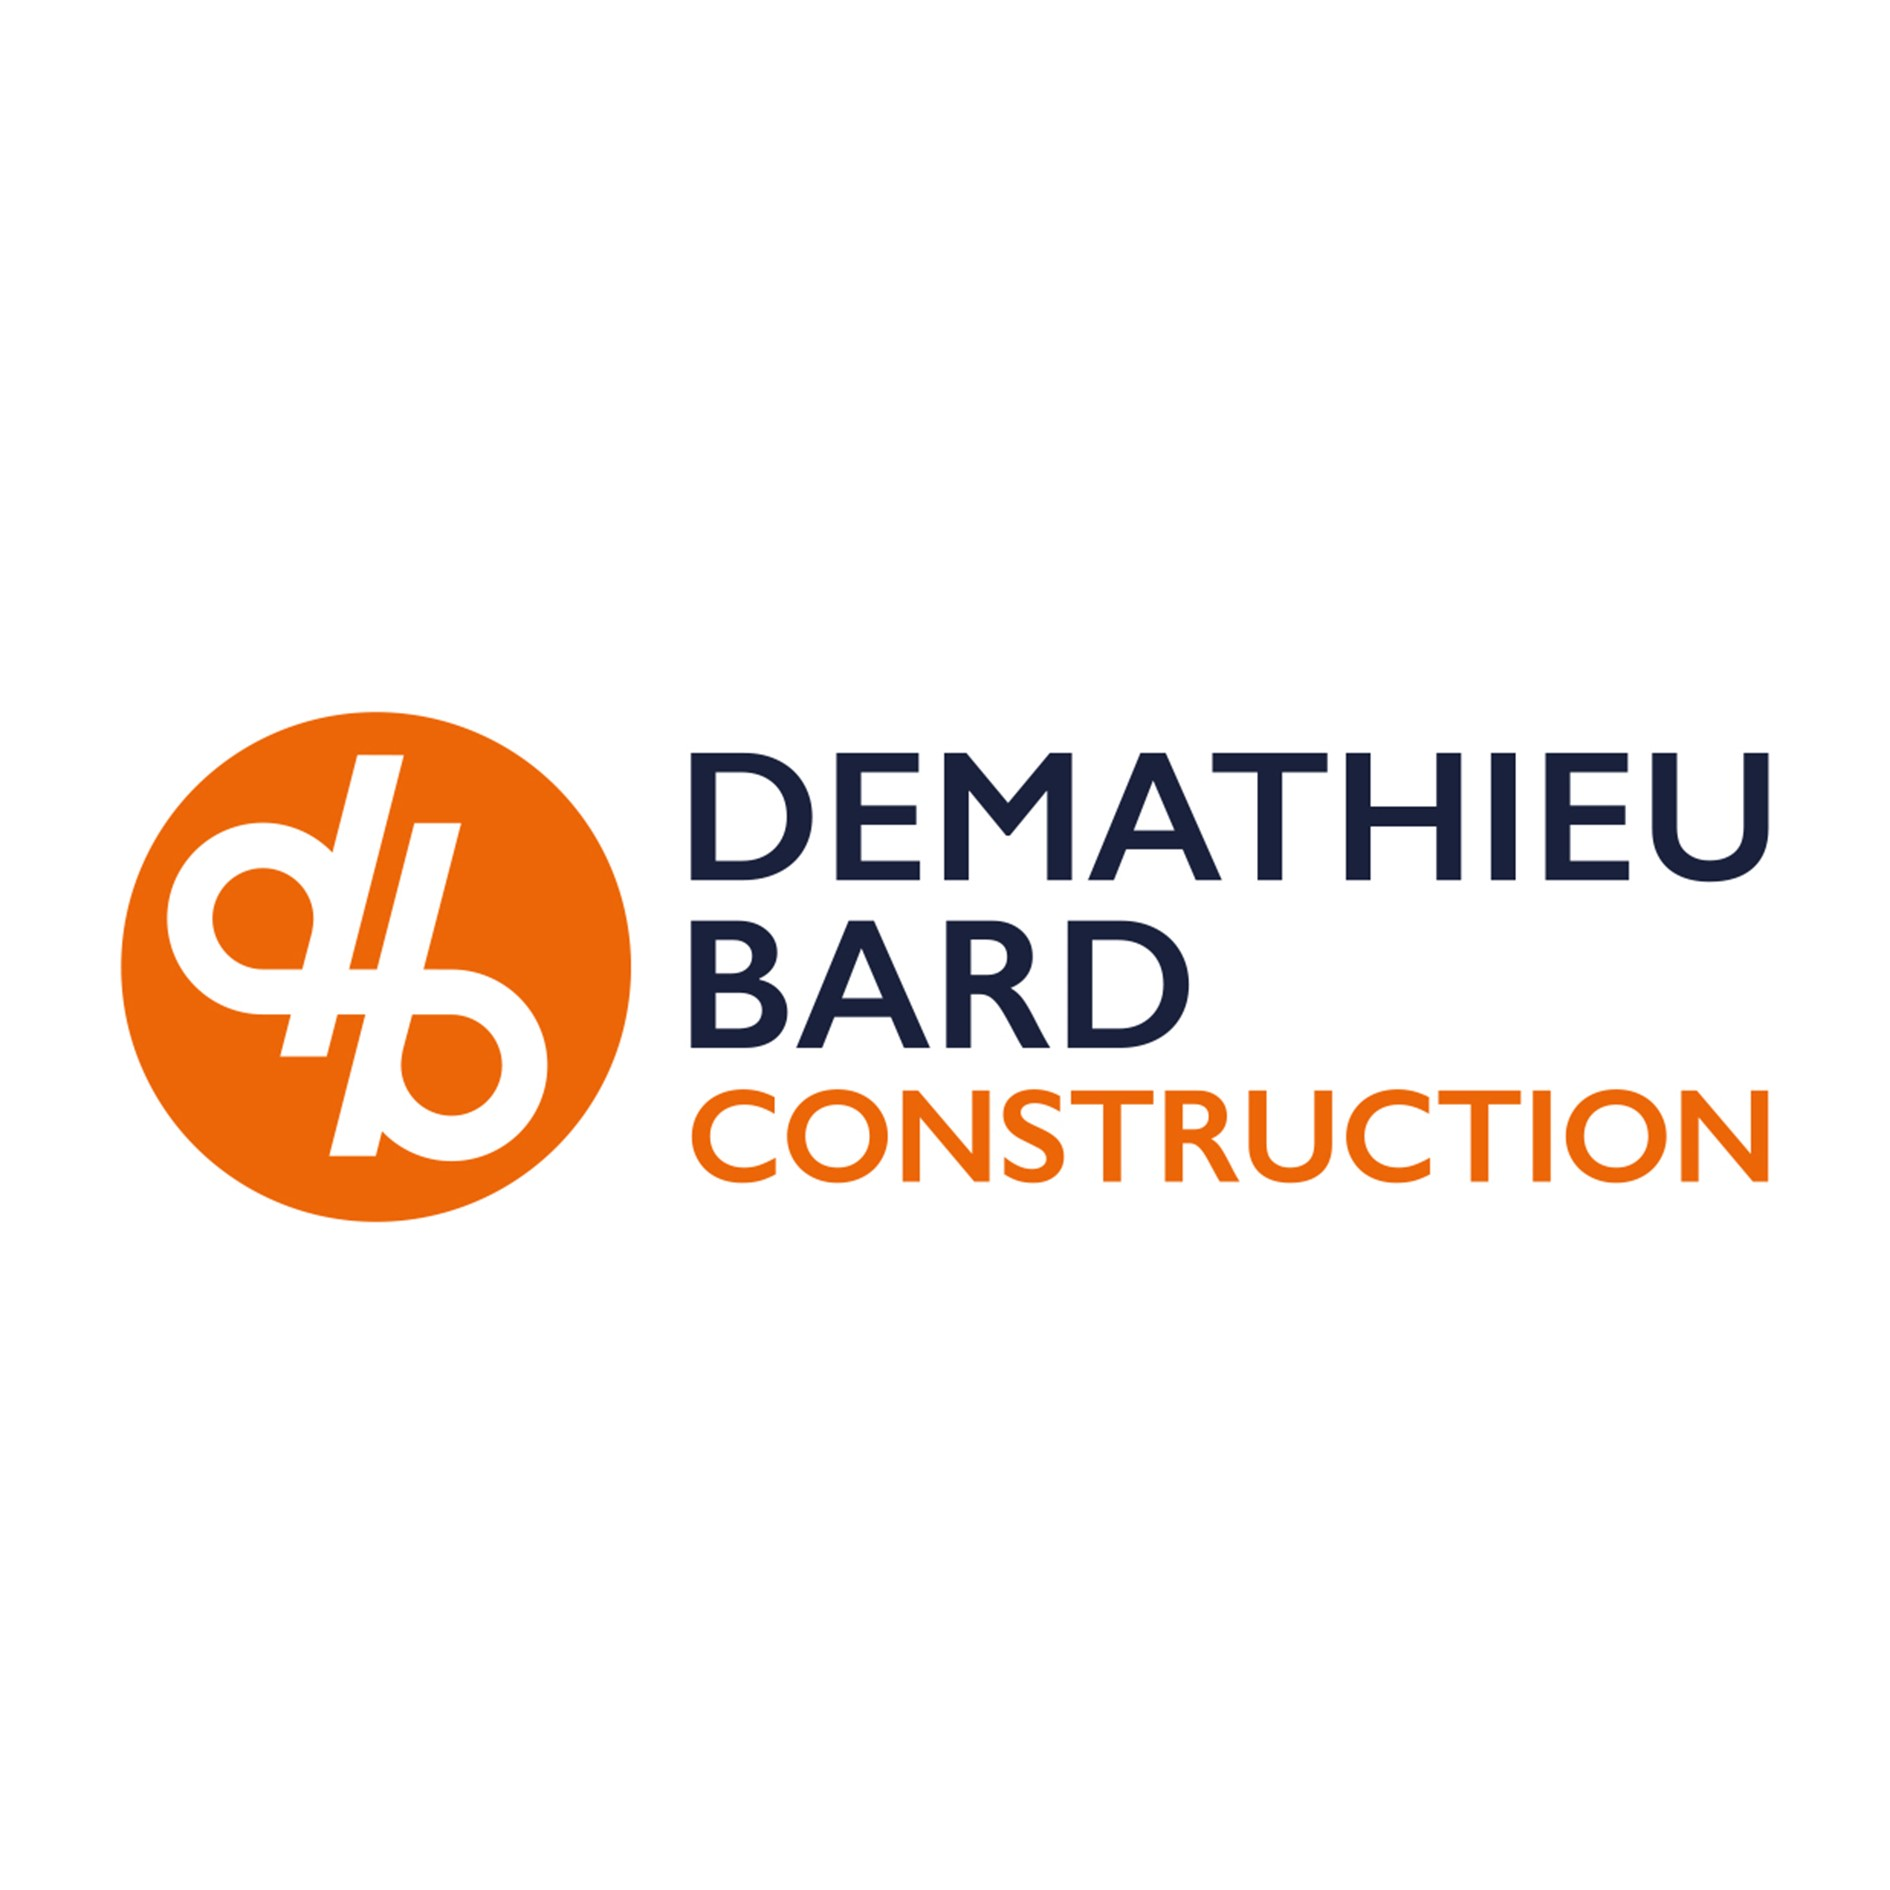 DEMATHIEU-BARD